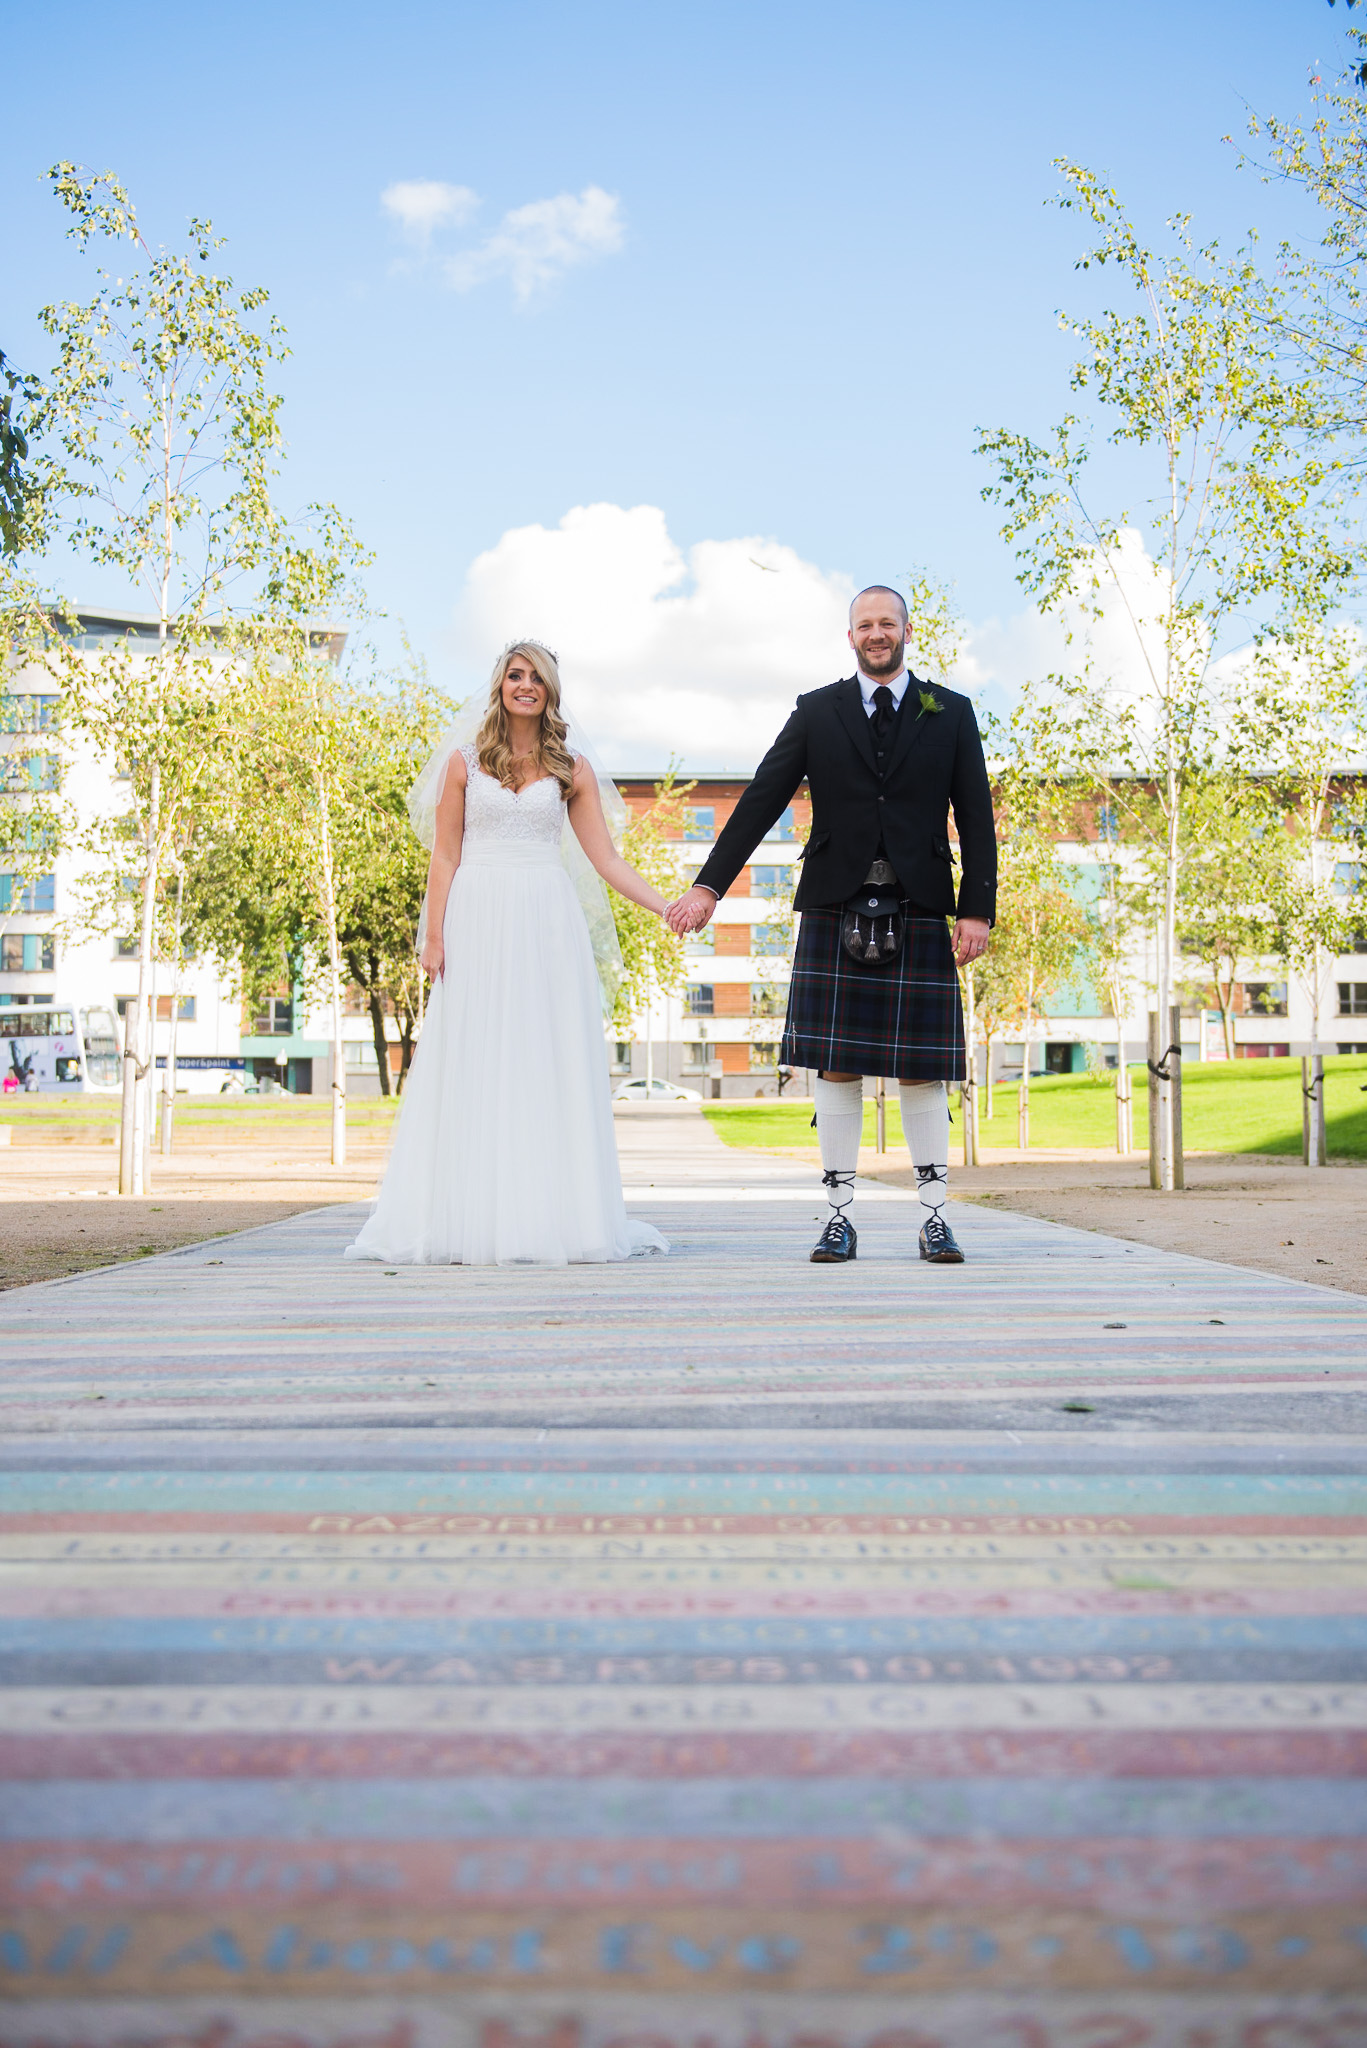 Glasgow Merchant City Wedding